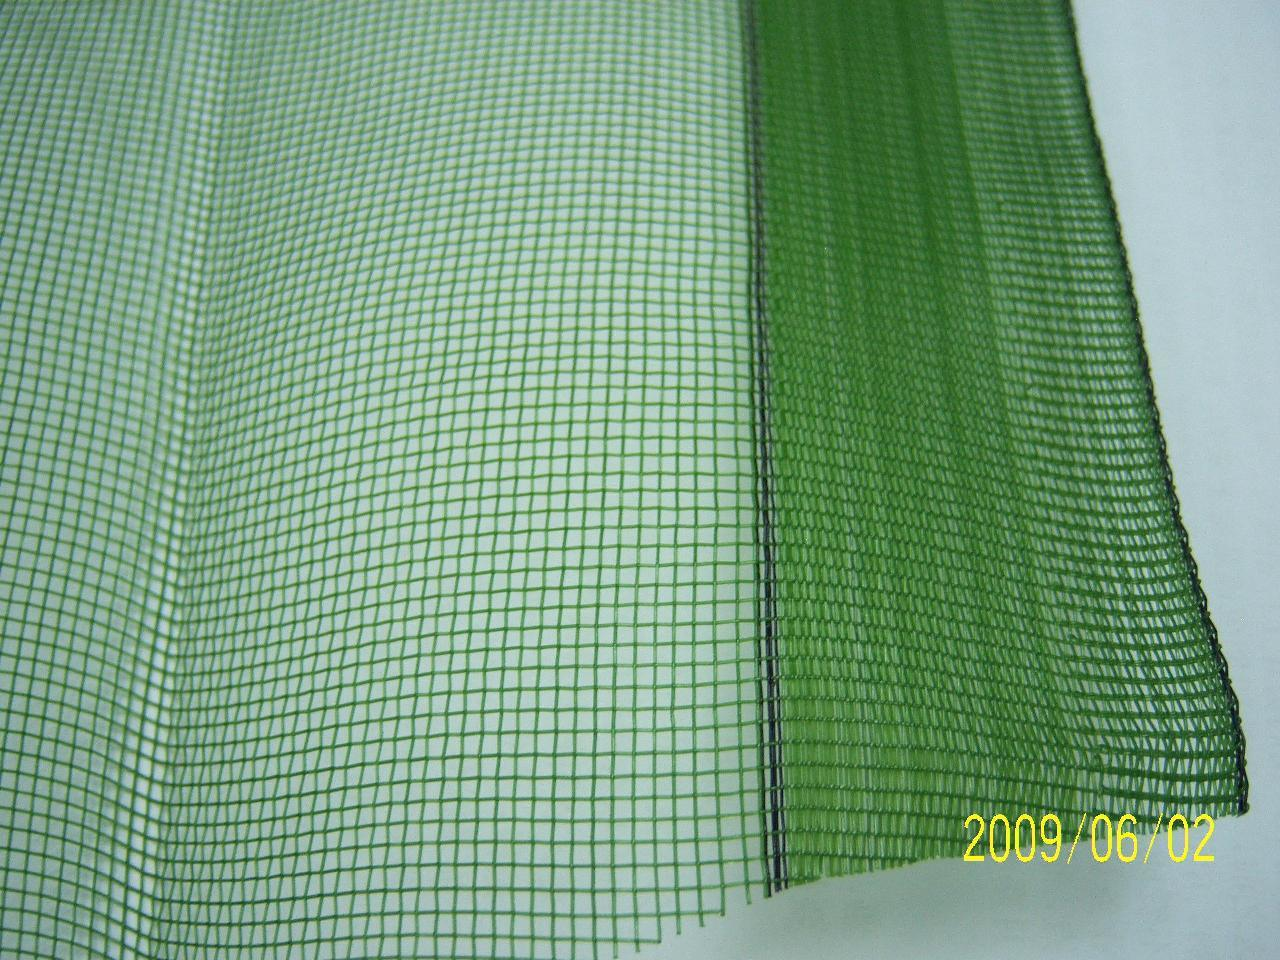 Anti Insect Net, Insect Net, Monofilament Fishing Net